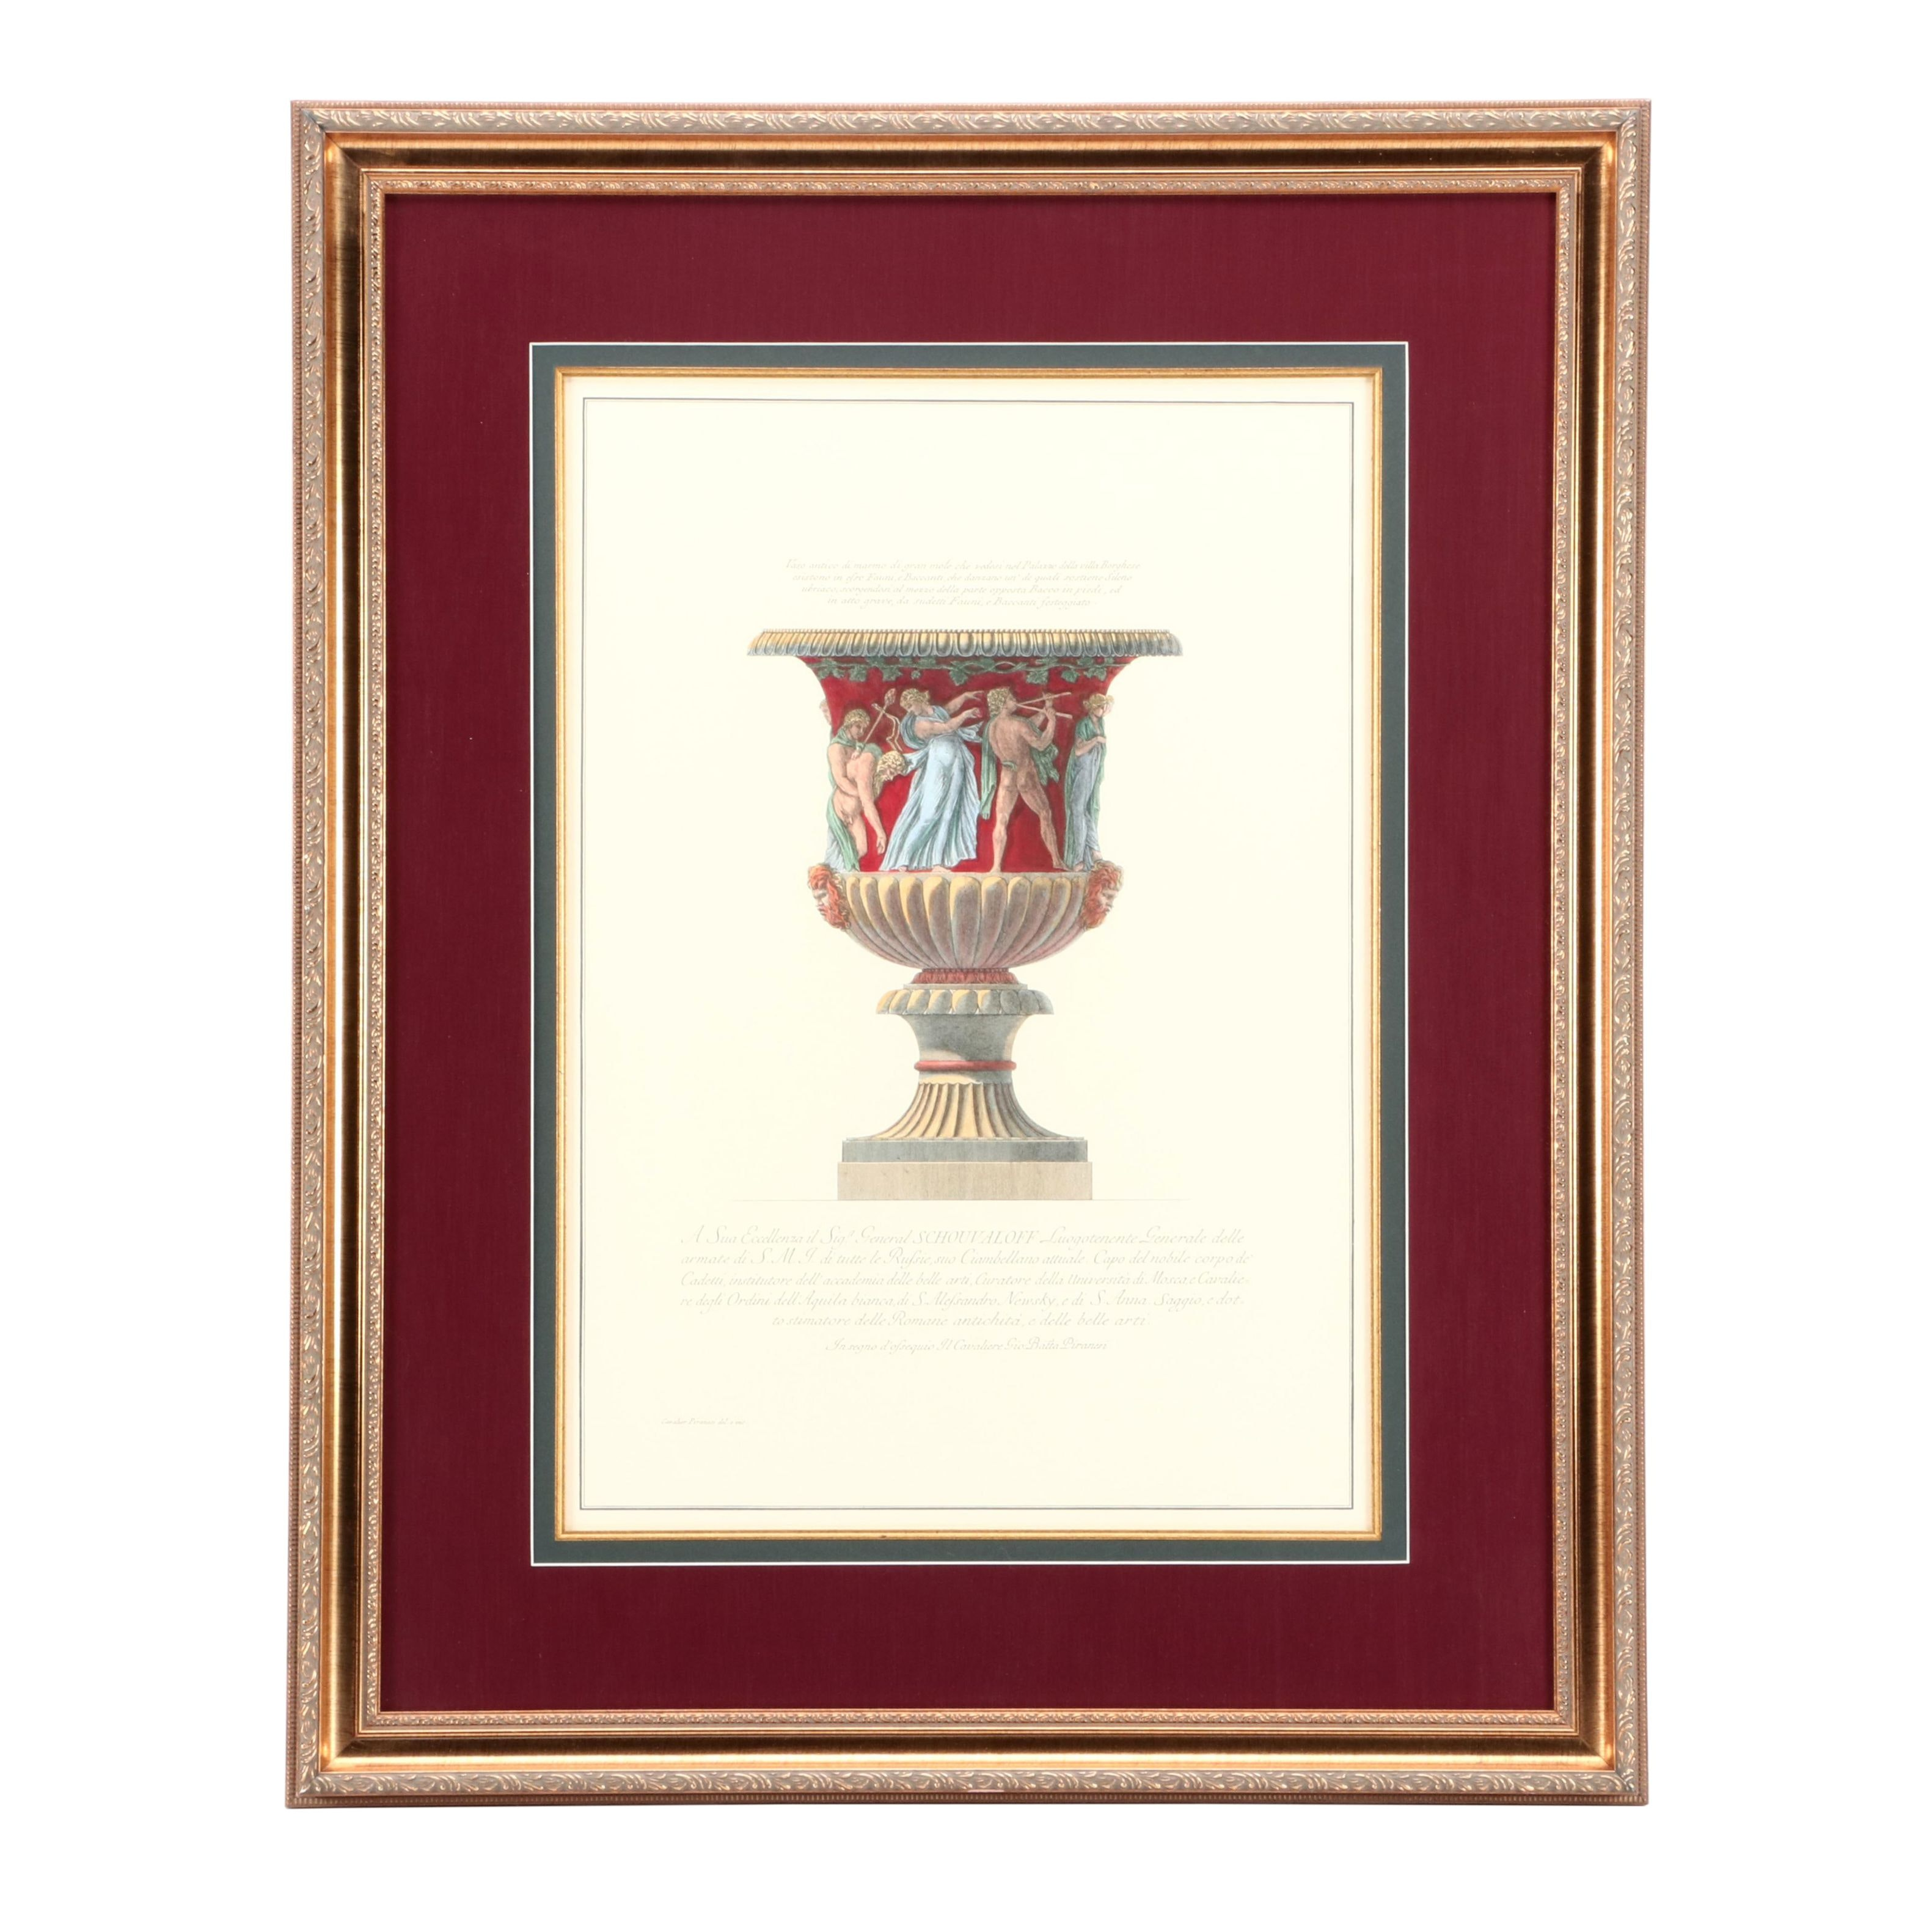 Hand-Colored Giclée Reproduction after Giovanni Battista Piranesi Etching